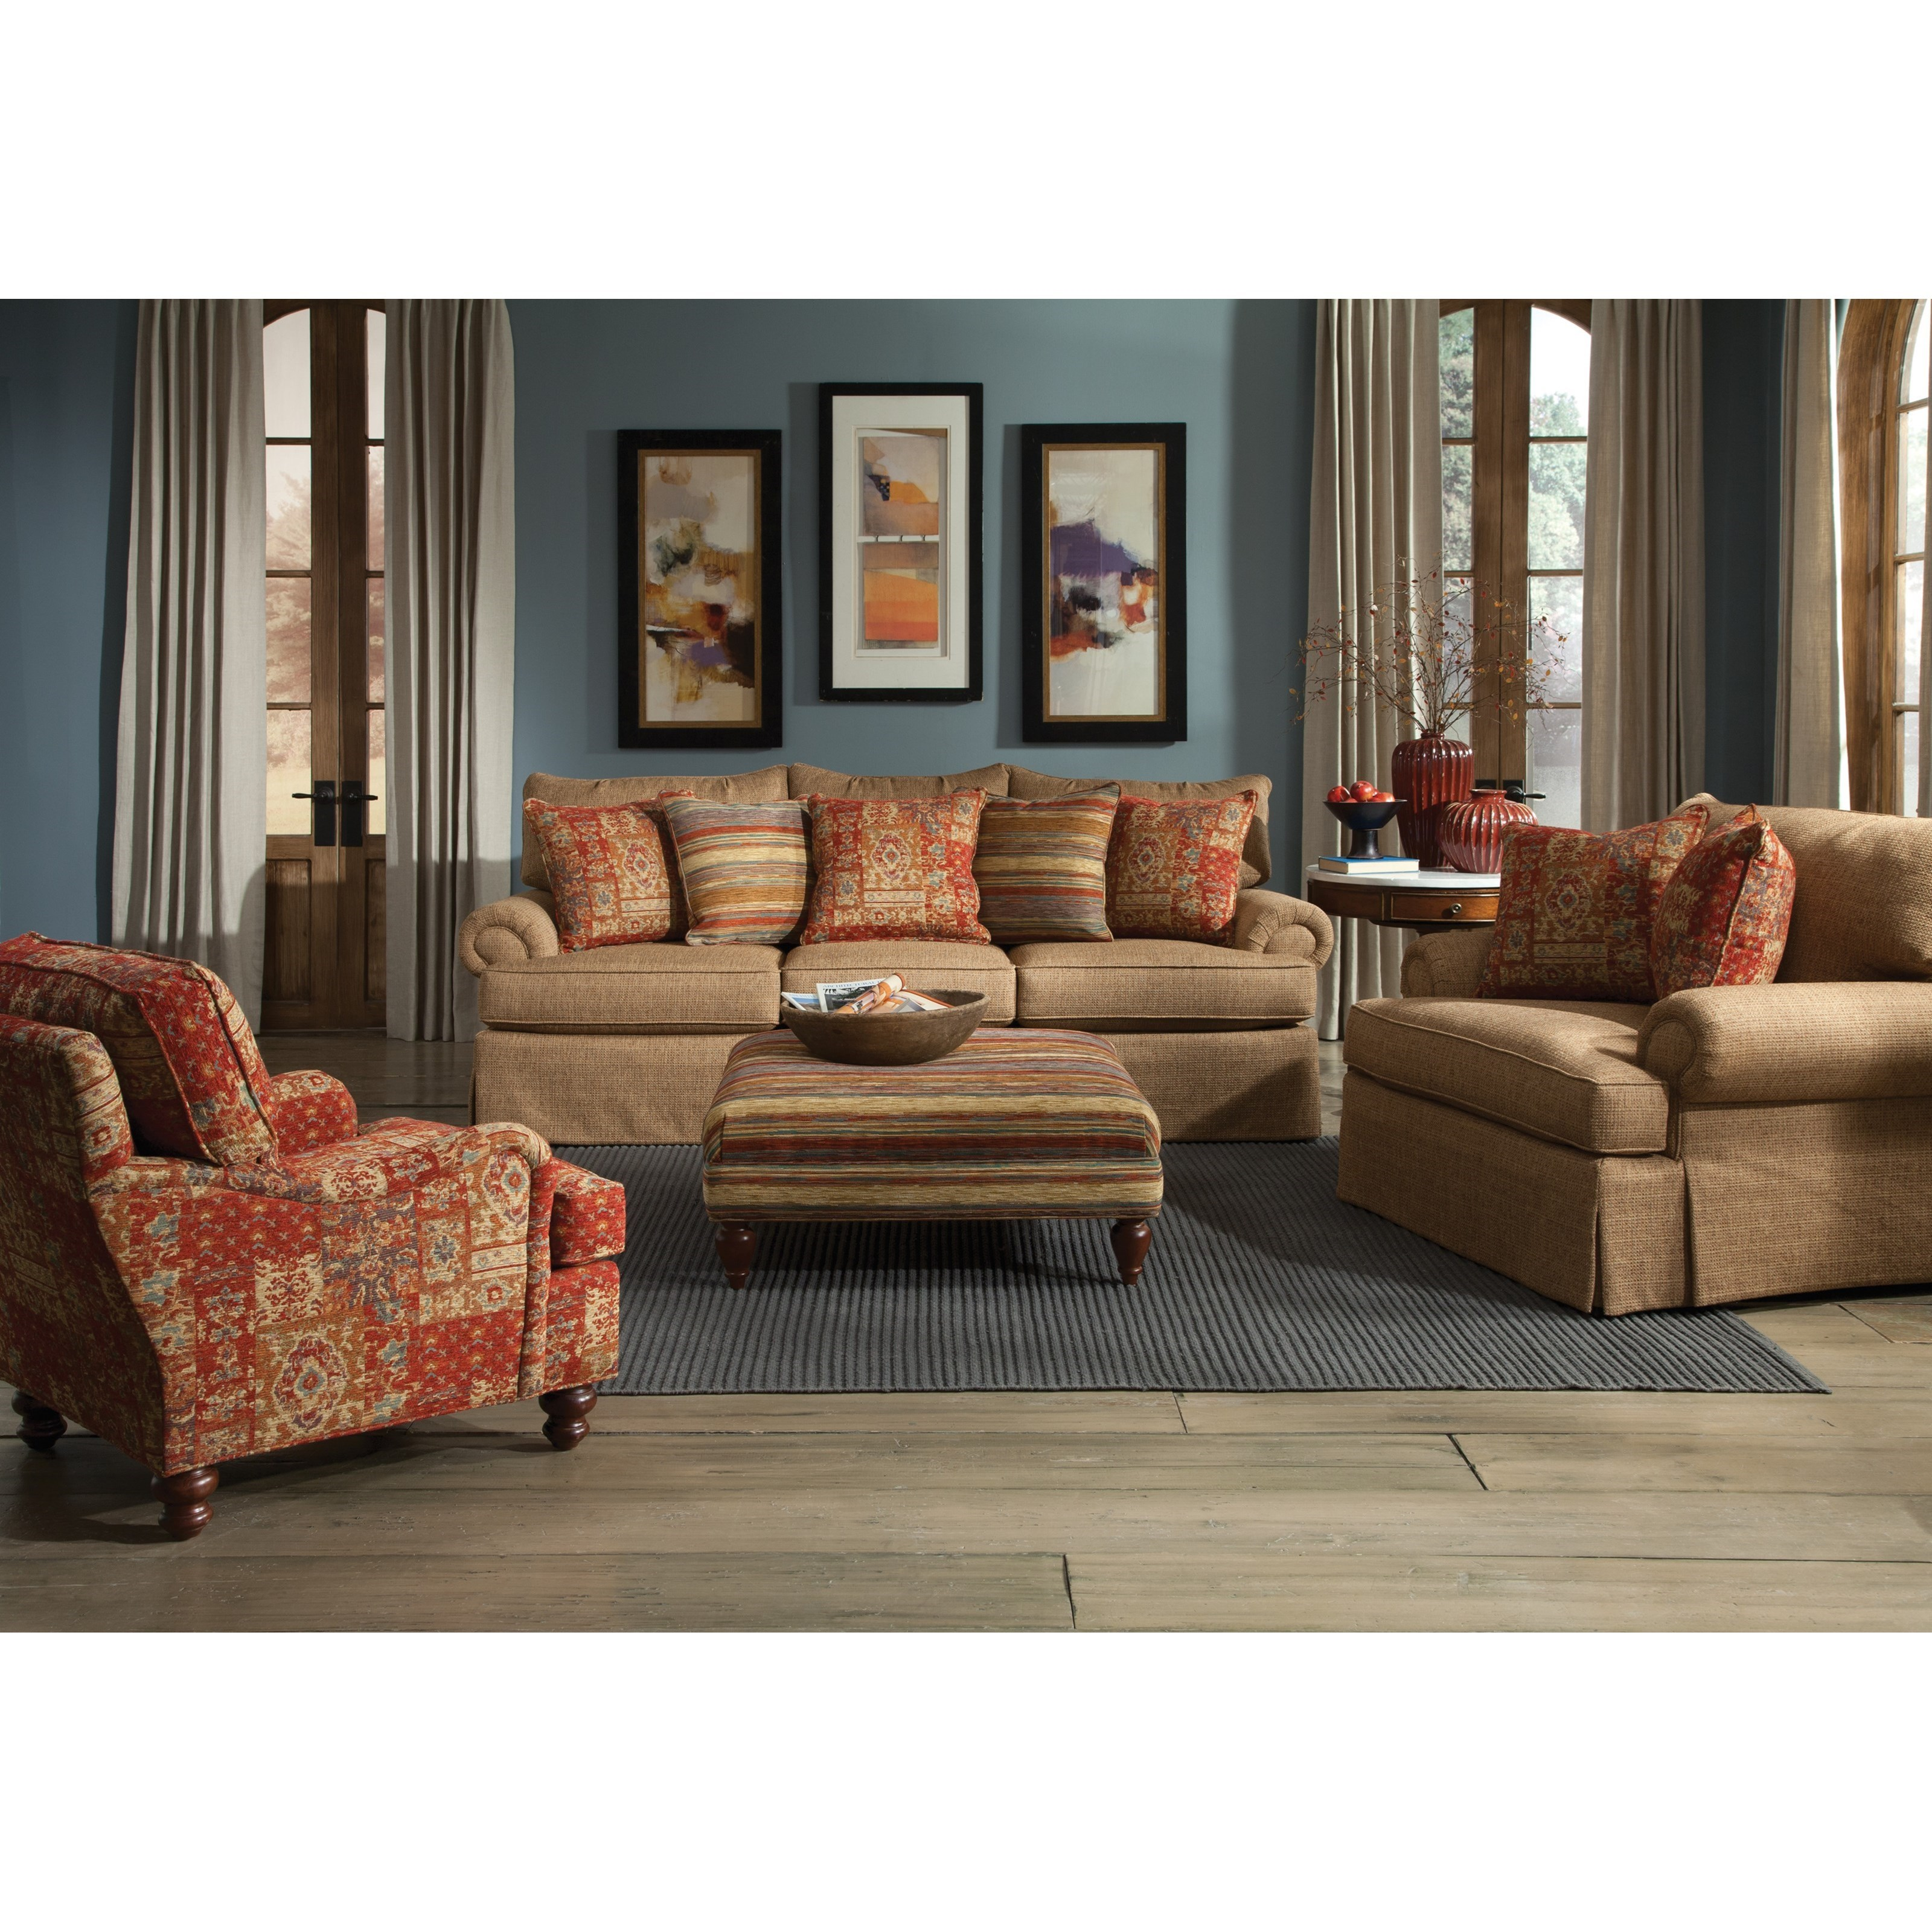 927550BD Living Room Group by Craftmaster at Home Collections Furniture